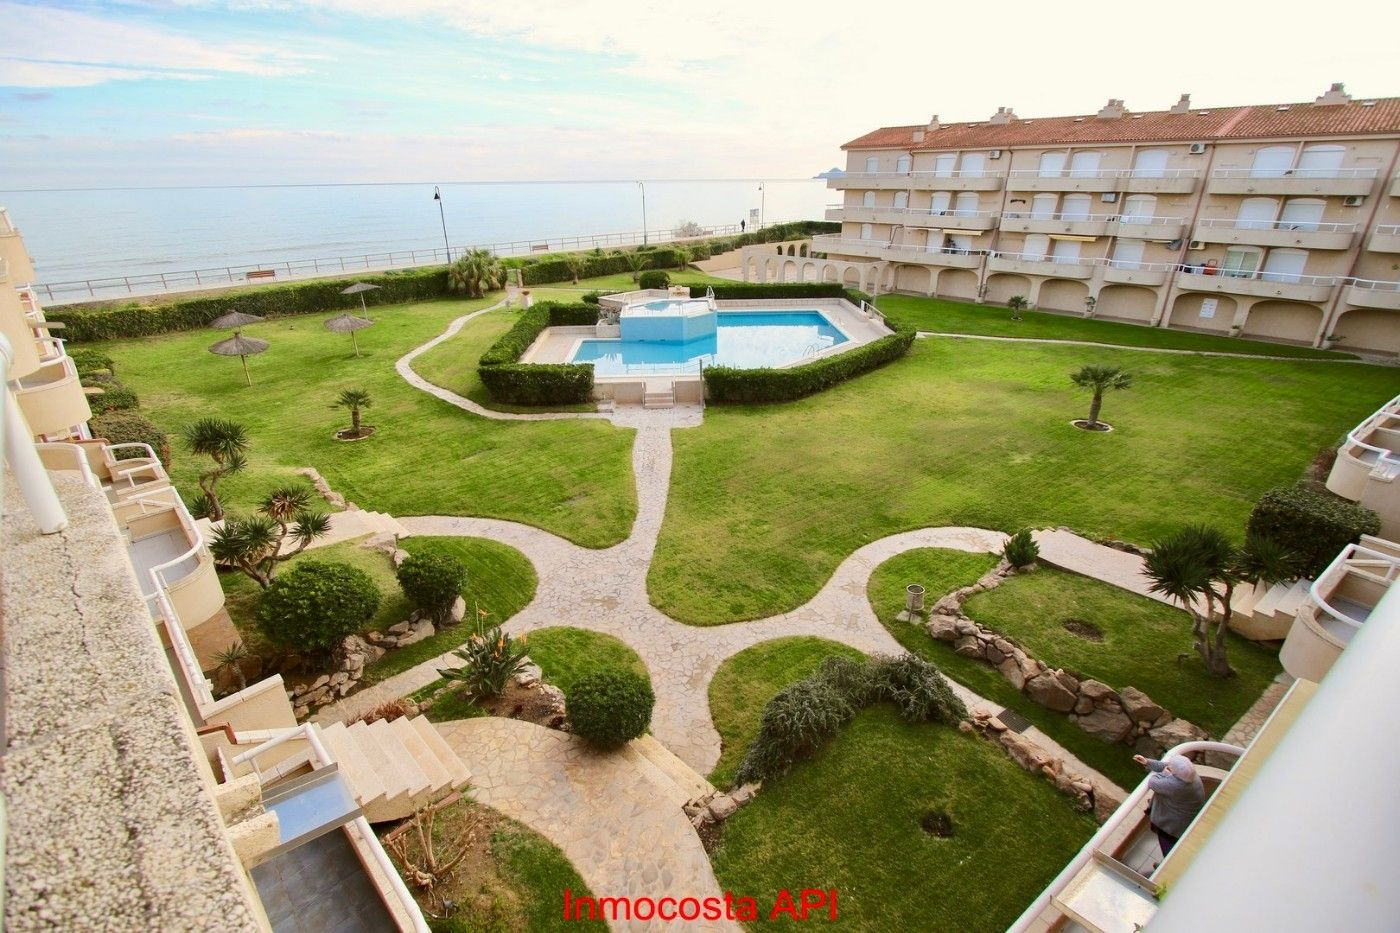 Appartement in Carrer assutzena, 37. Vistas fantasticas al mar